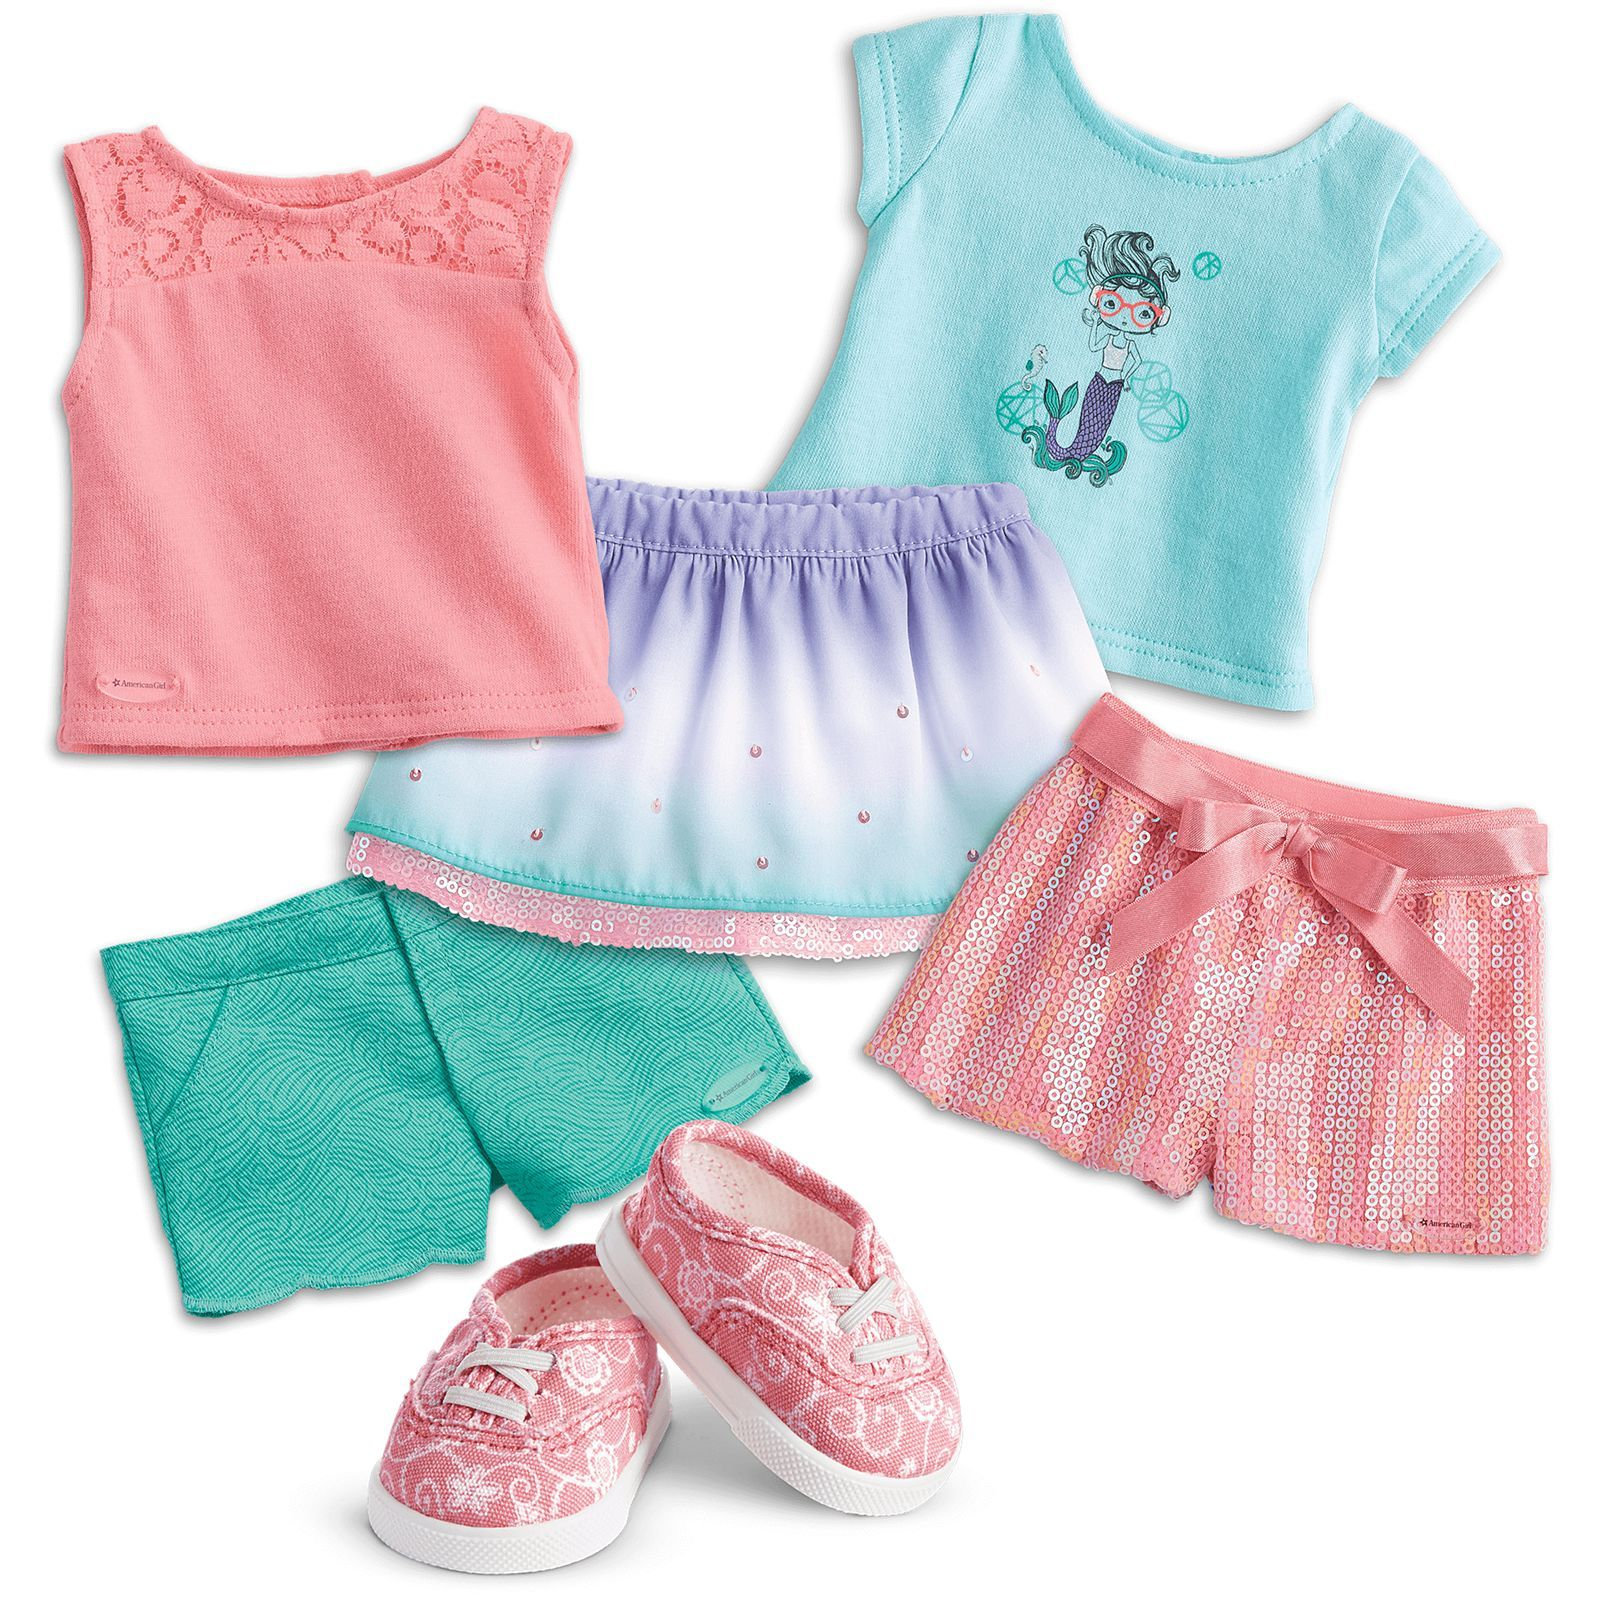 American Girl Luciana/'s Stellar Outfit Top Jacket Shorts Sneakers NEW in Box